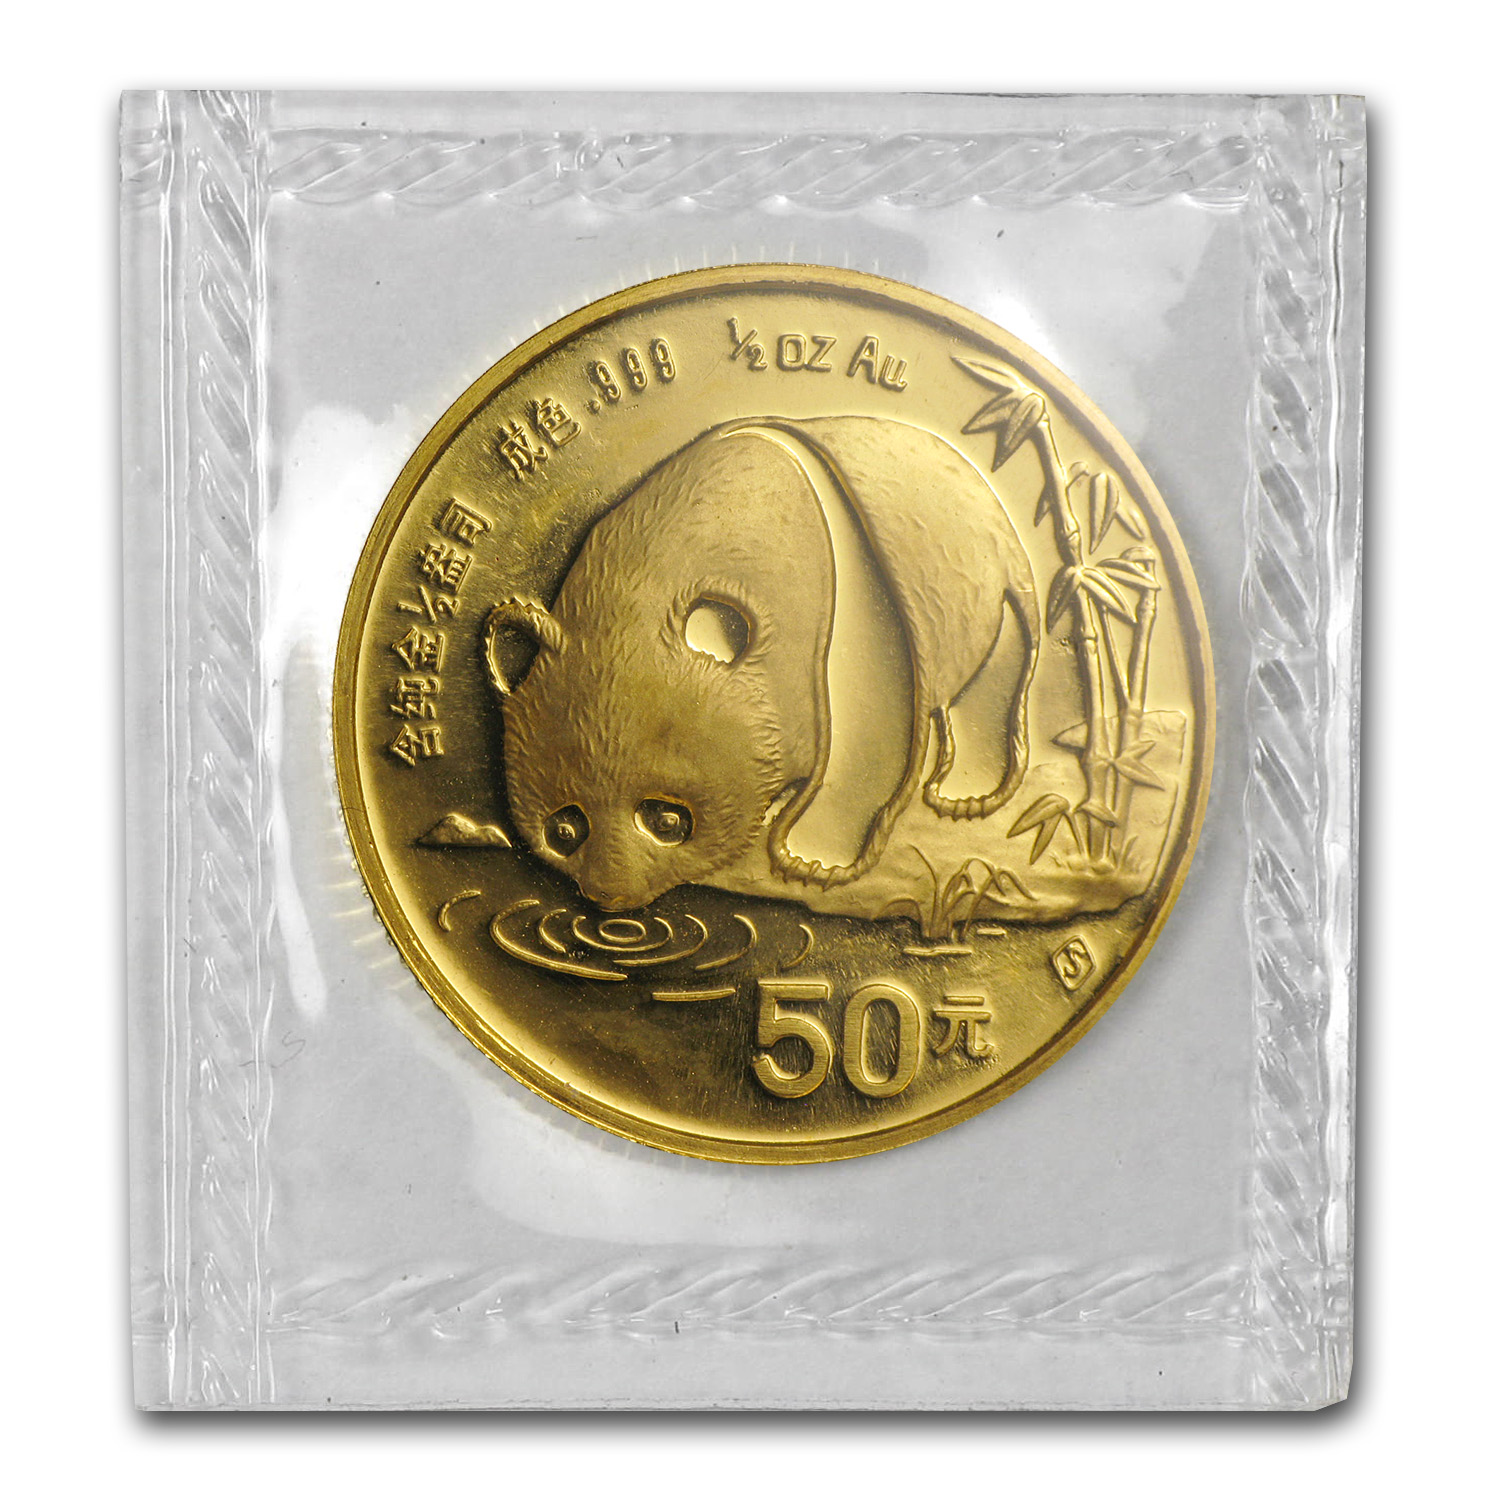 1987-S China 1/2 oz Gold Panda BU (Sealed)